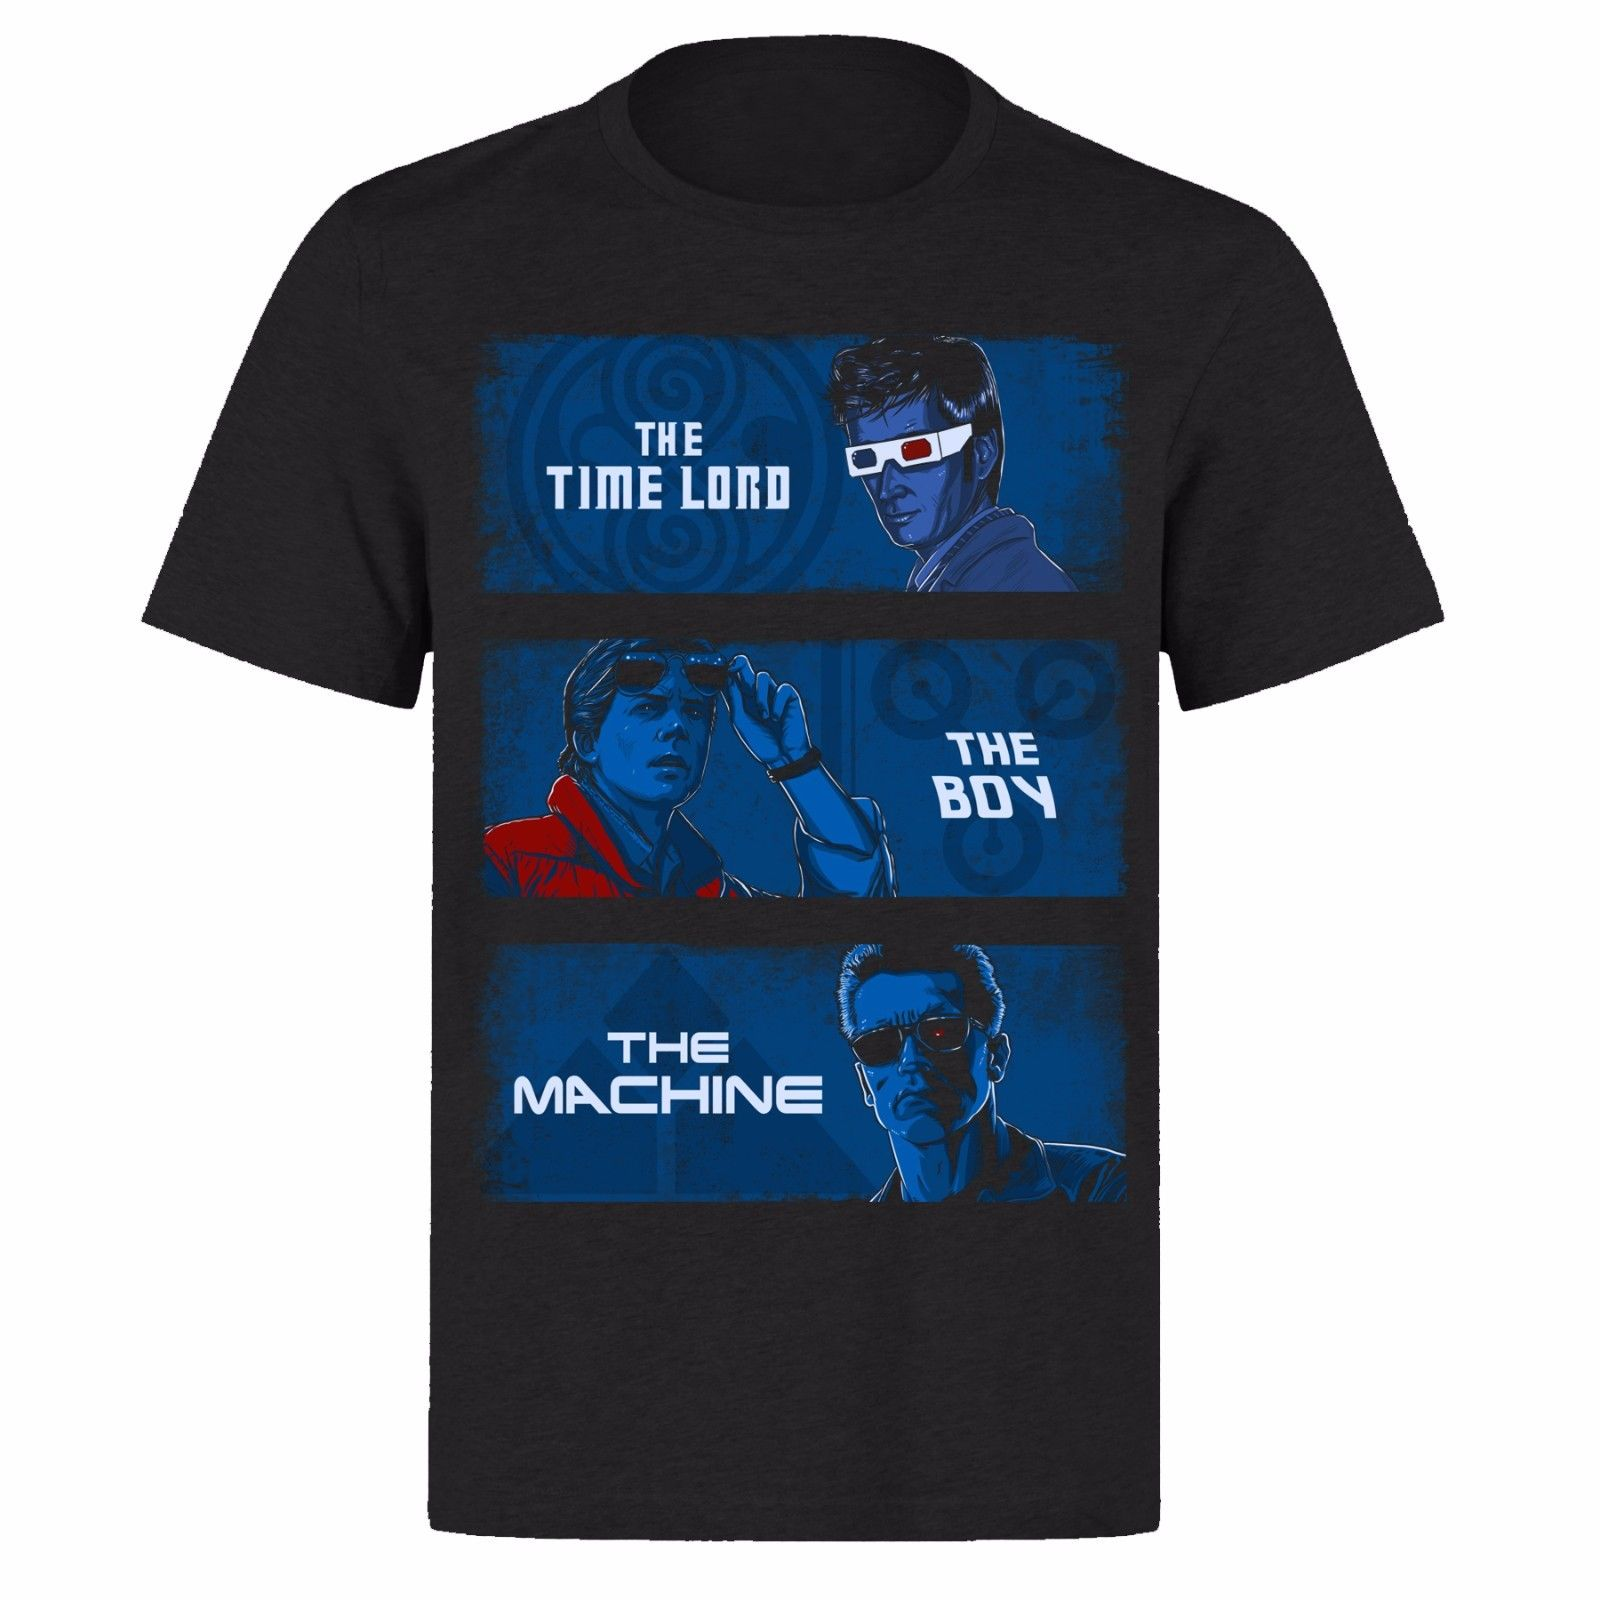 TIME TRAVELERS THE TIME LORD THE BOY THE MACHINE UNISEX BLACK PH52 T-SHIRT